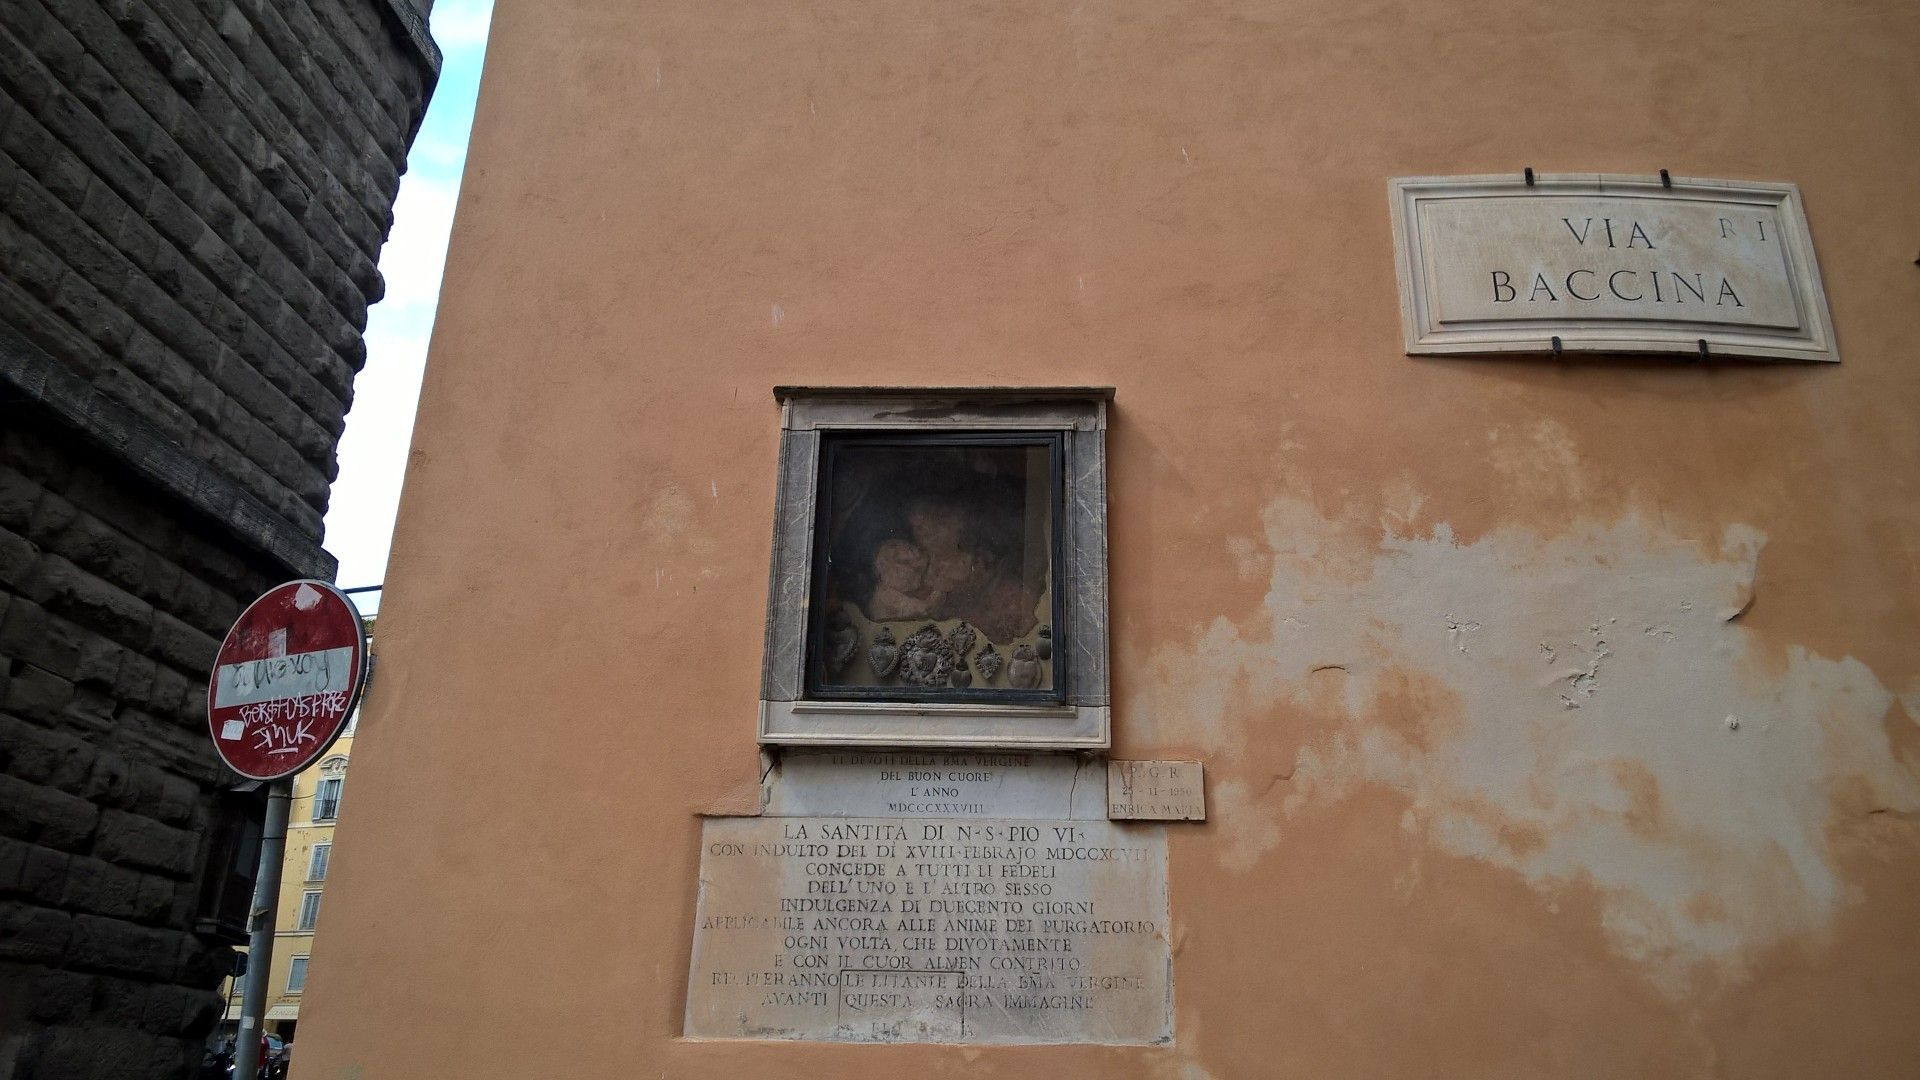 Rome in August - Via Baccina.  http://romandespatches.blogspot.co.uk/2015/08/rome-in-august-via-baccina.html